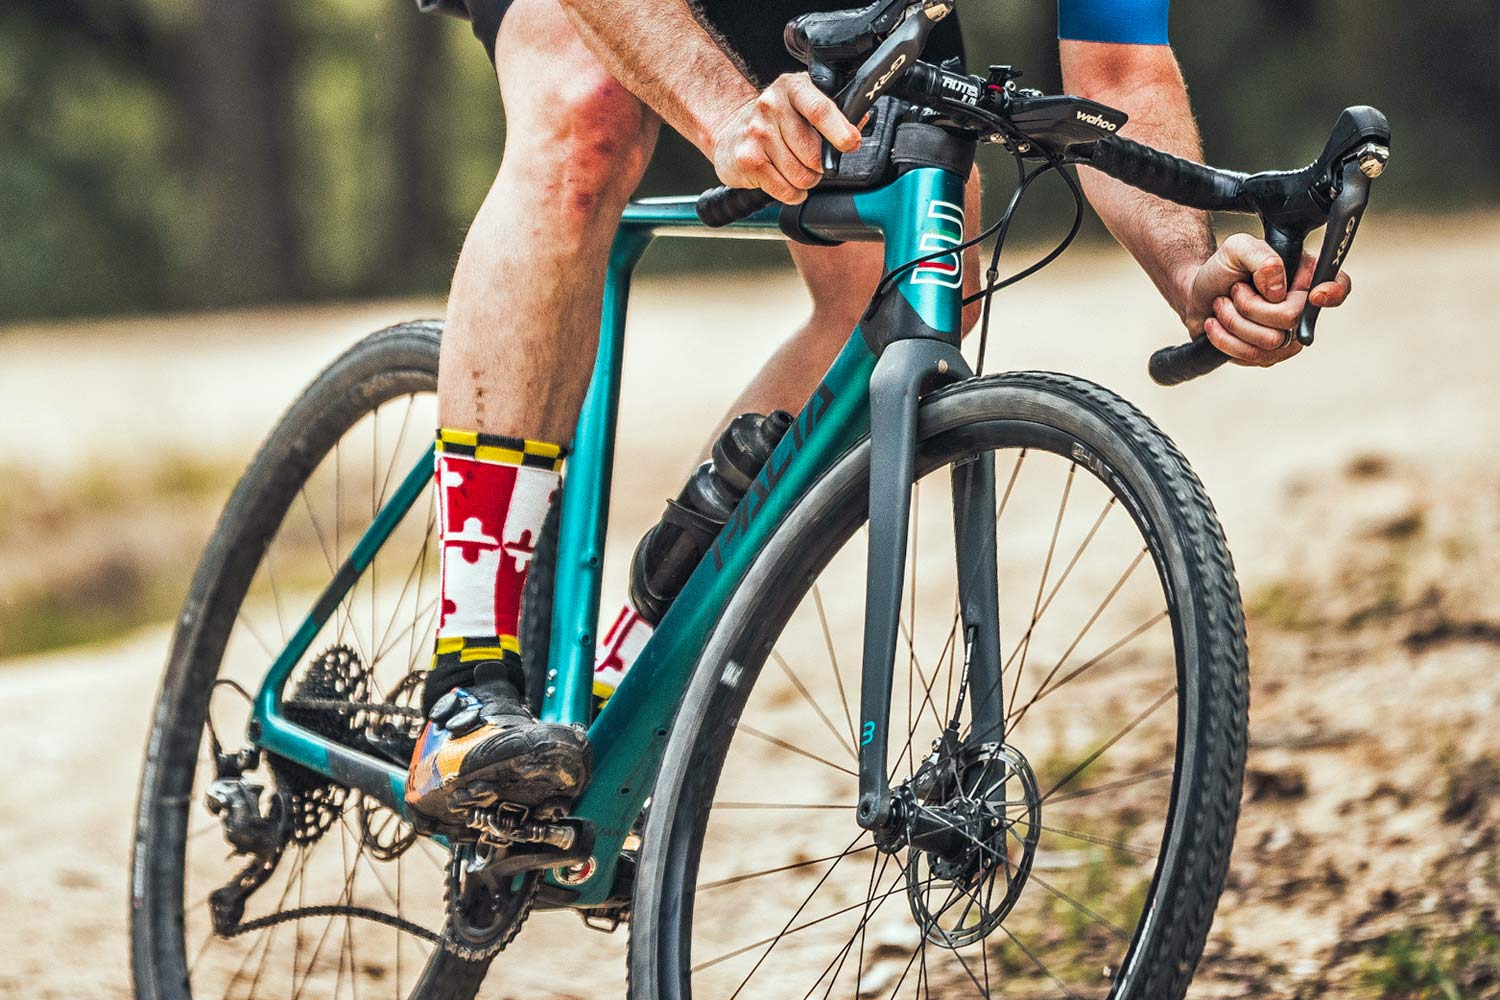 Basso Palta fast carbon gravel road bike - review: road-inspired fast, stiff, made-in-Italy, photo by Javi Echevarria Ruiz, riding detail